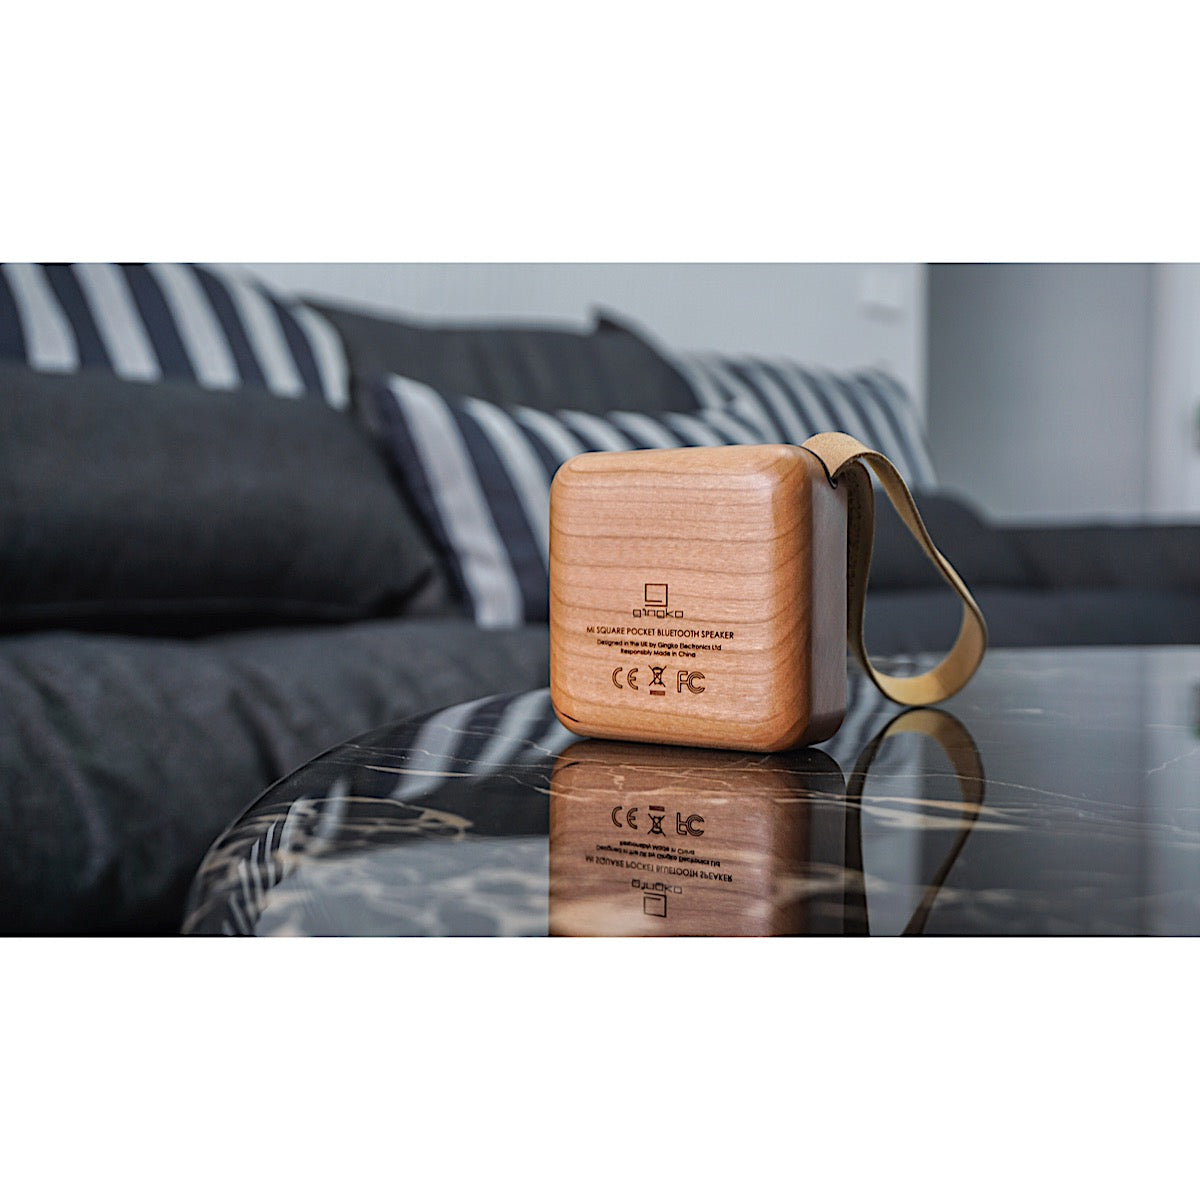 Mi Square Cherry Pocket Speaker